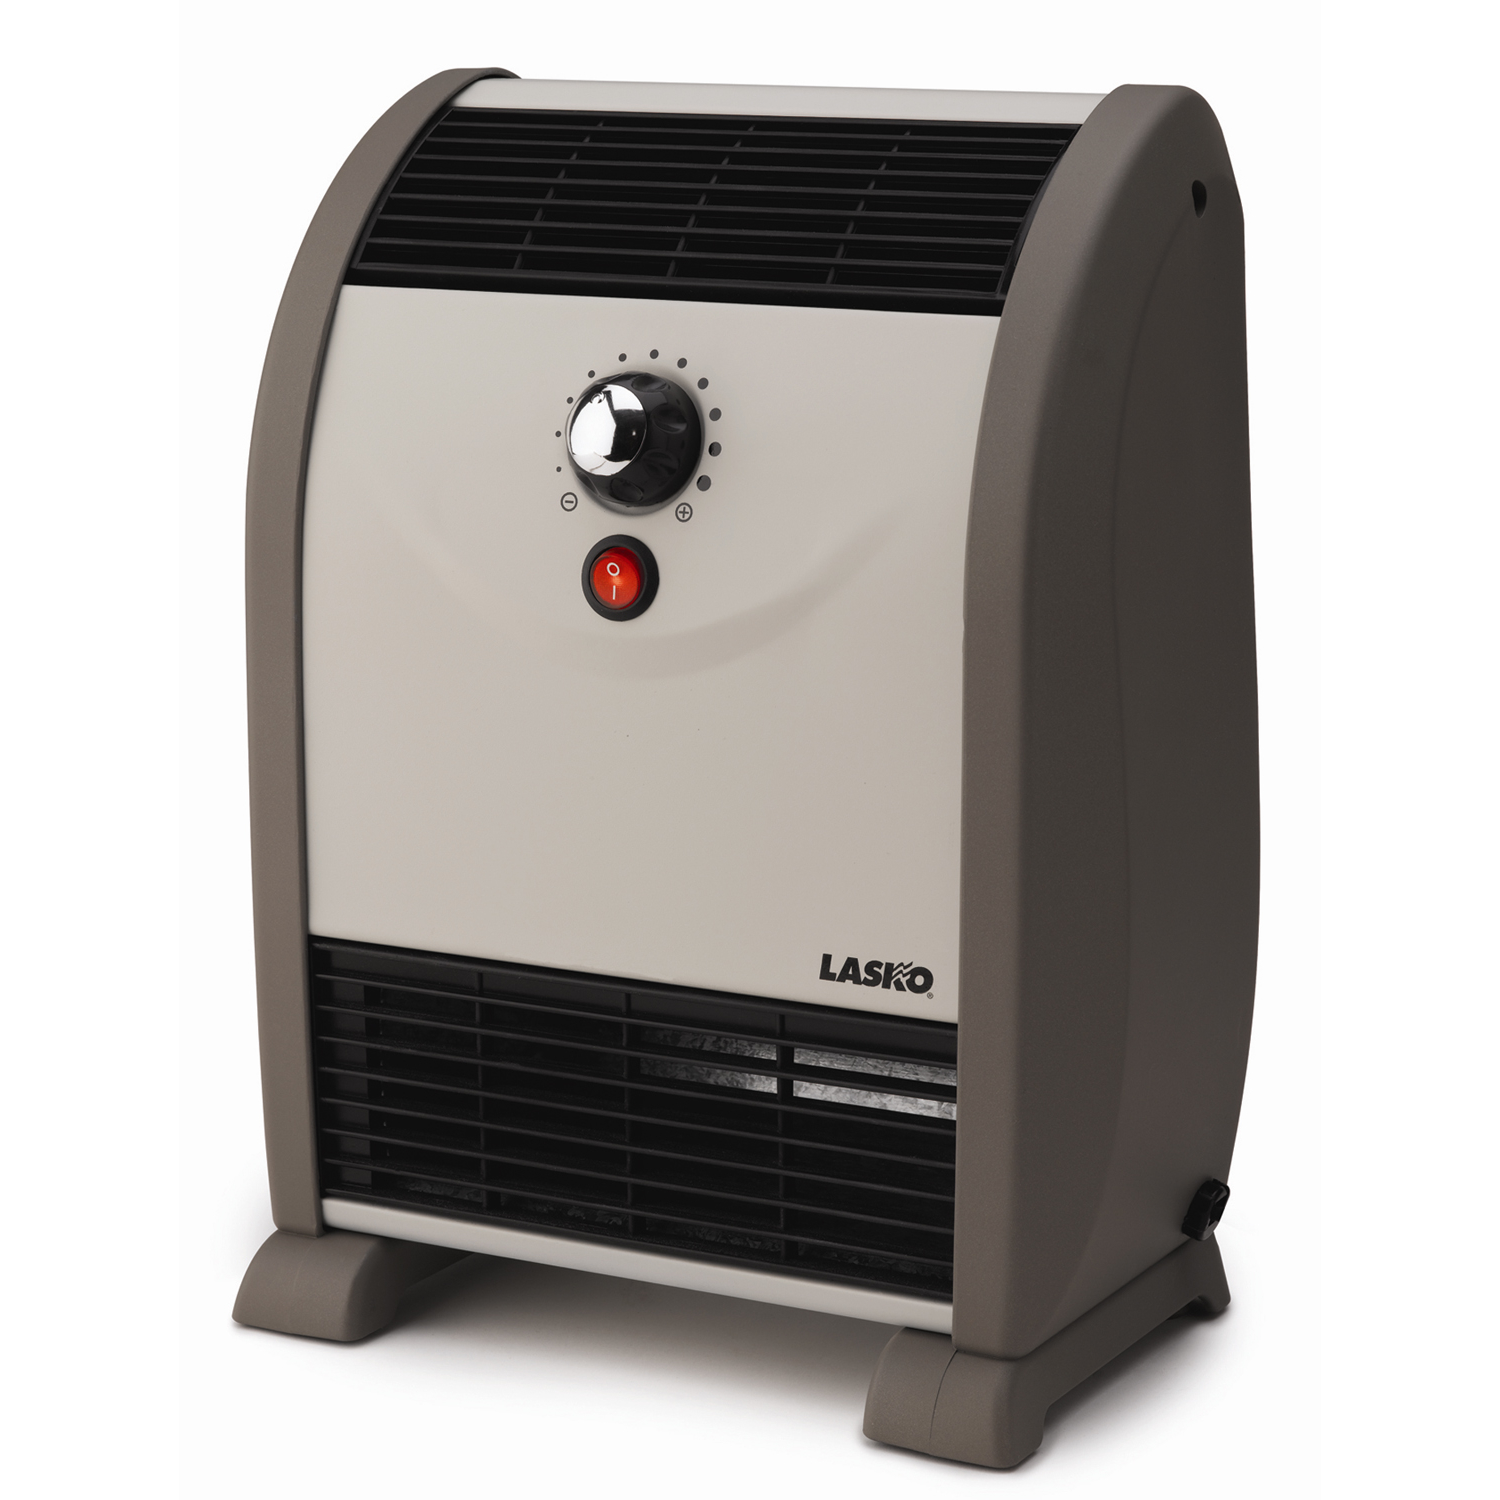 Lasko 5812 1500W Automatic Air Flow Heater With Temperature Regulation